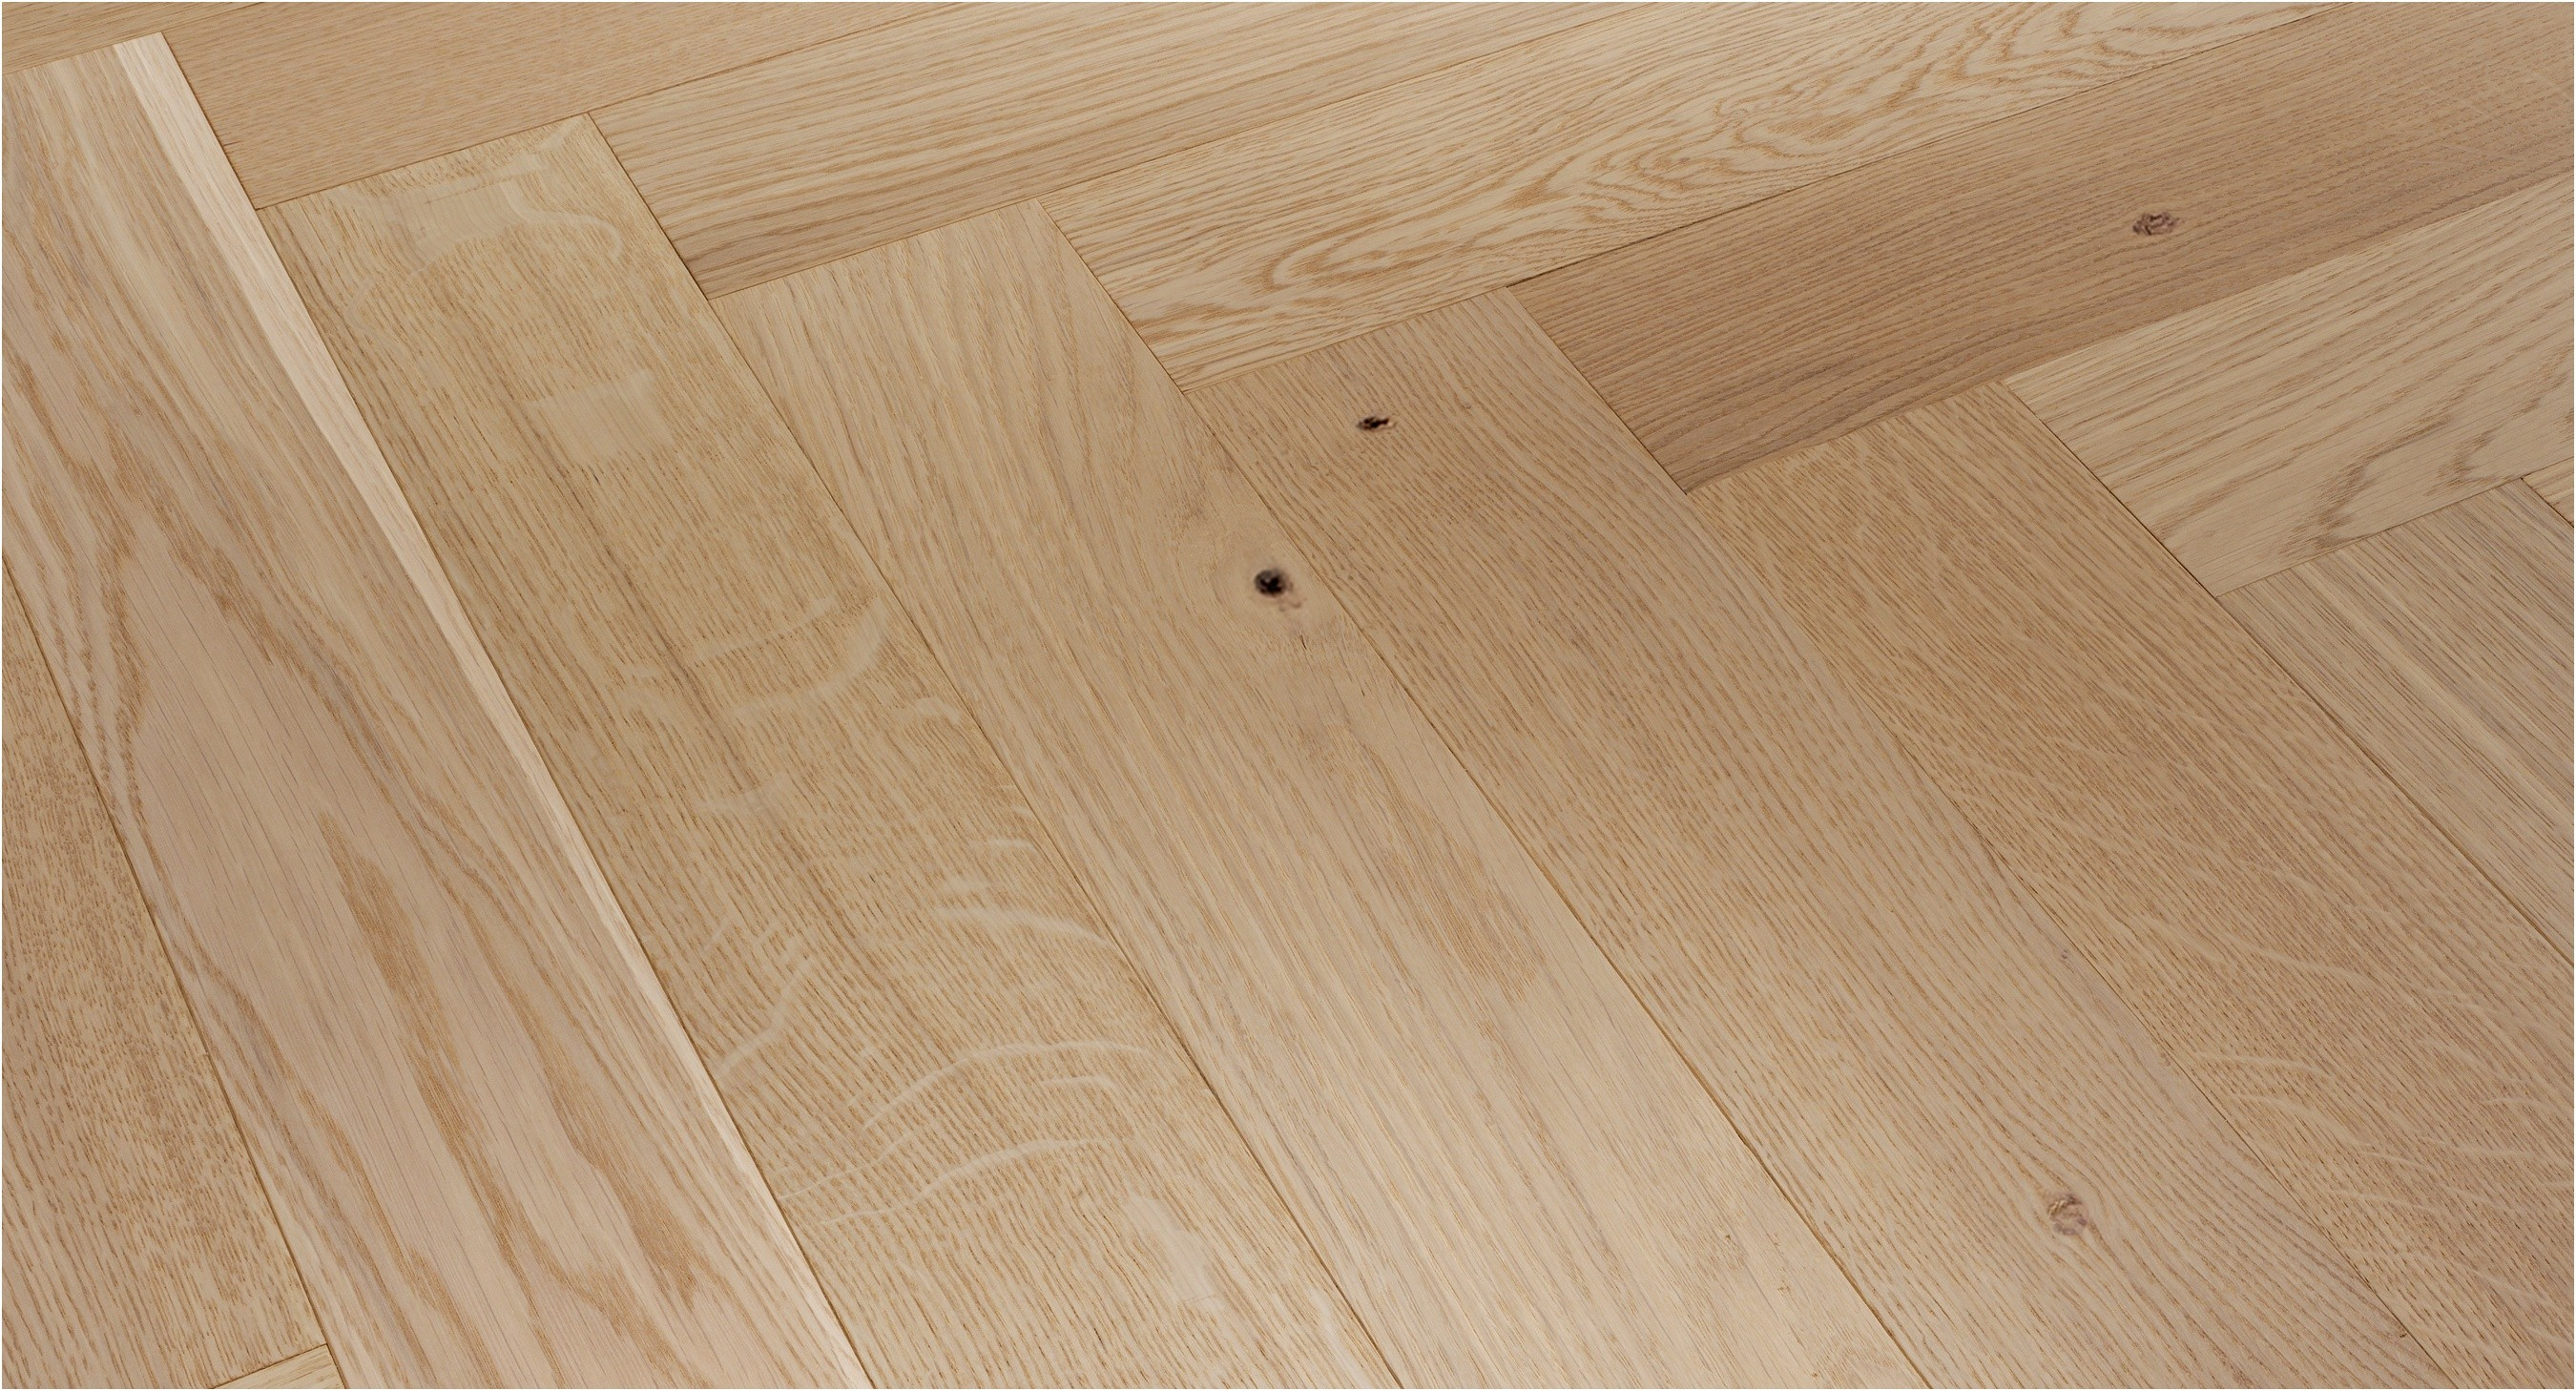 Which Hardwood Floor Width is Better Of 19 Awesome Hardwood Flooring for Sale Photograph Dizpos Com with Regard to Hardwood Flooring for Sale Awesome Flooring Sale Near Me Stock 0d Grace Place Barnegat Nj Photos